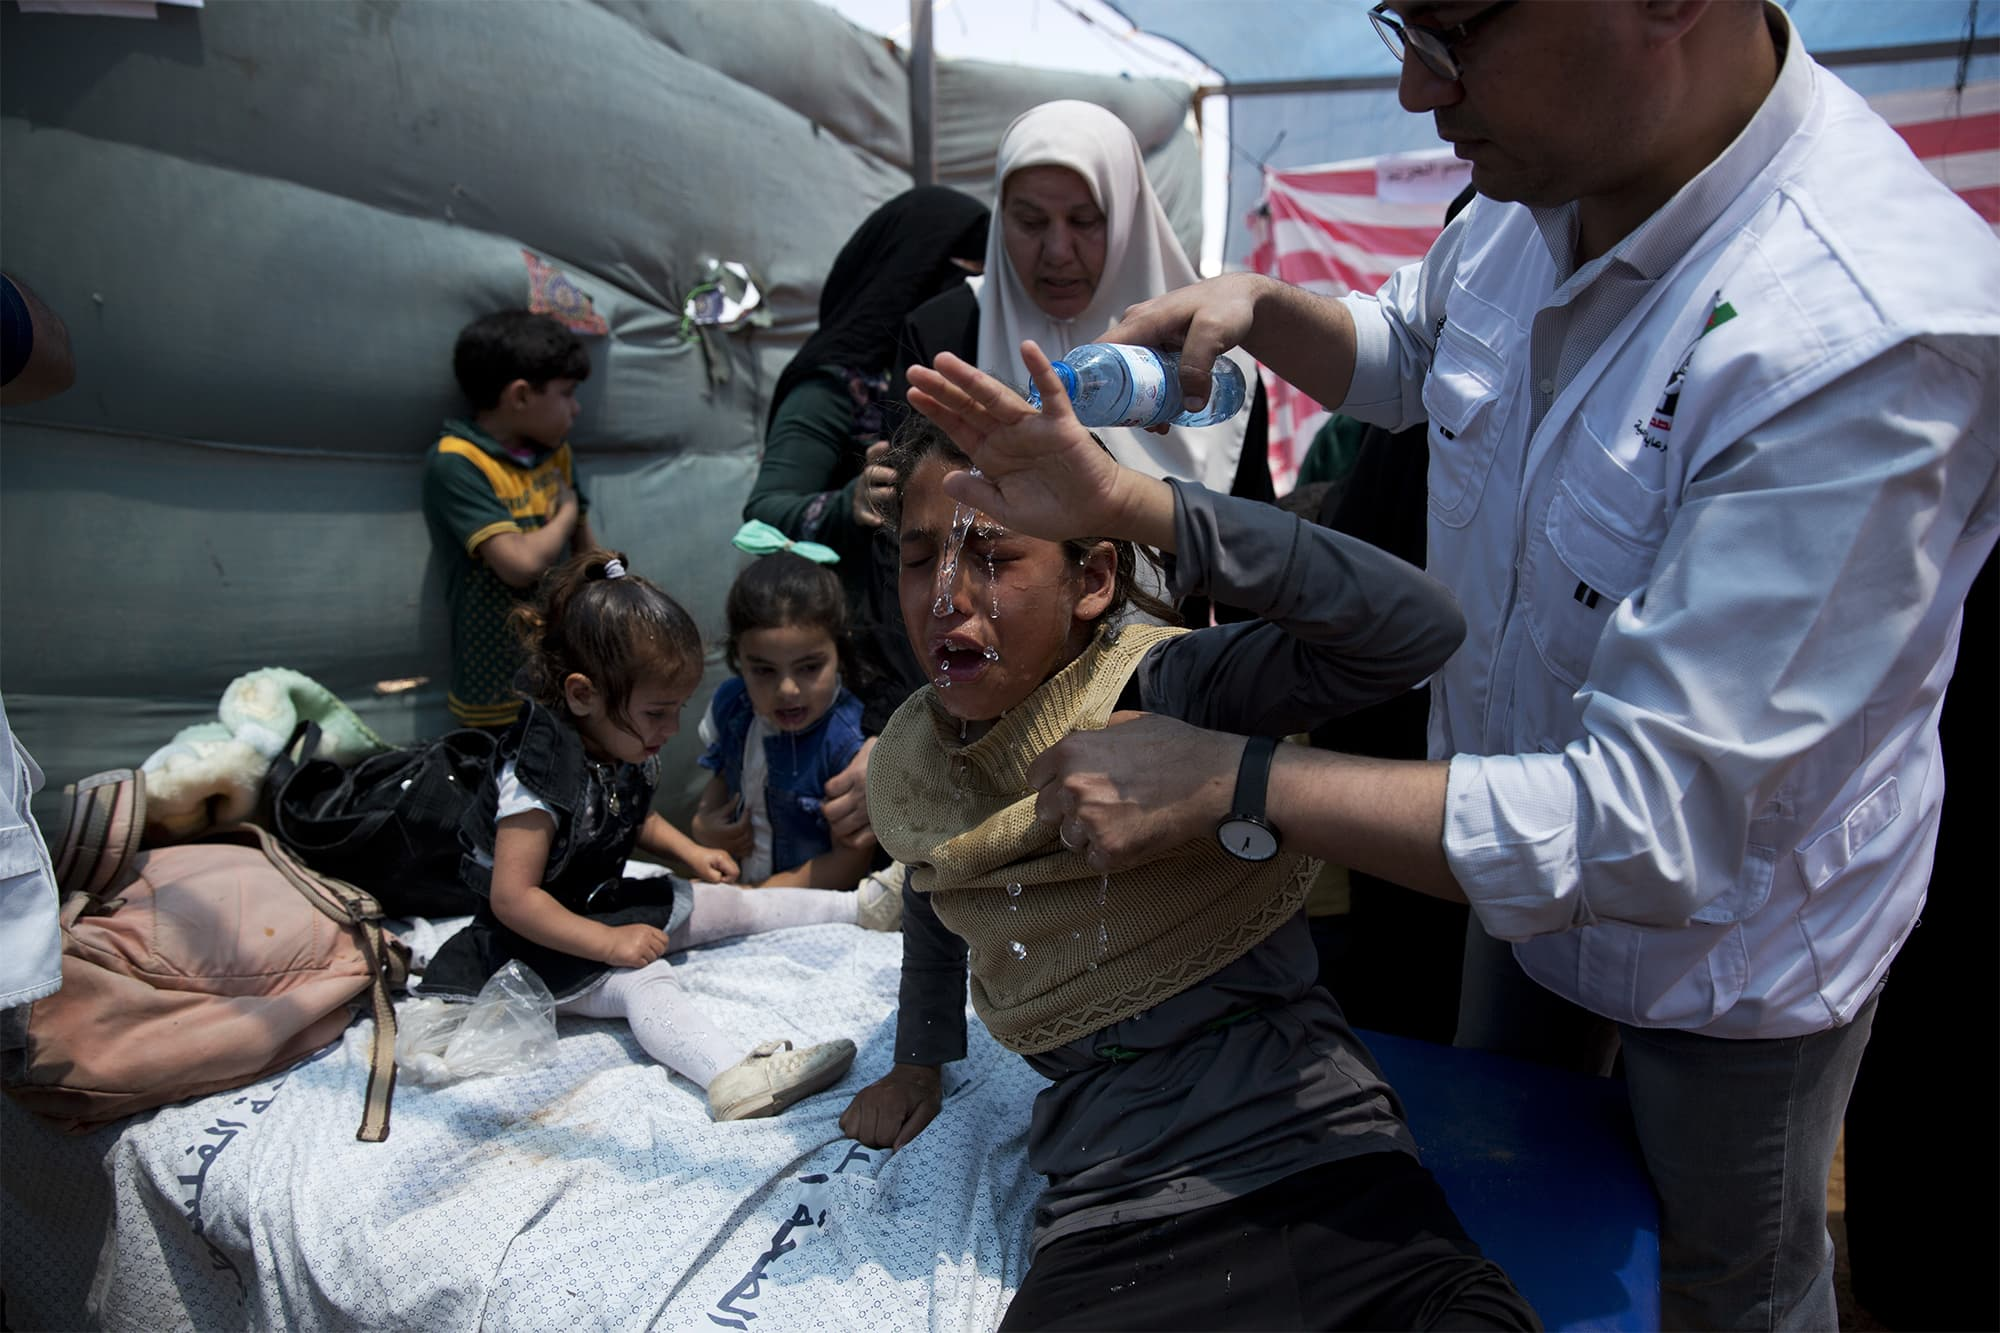 Medics treat Palestinian children suffering from teargas inhalation during a protest near Beit Lahiya, Gaza Strip on Monday, May 14, 2018. ─ AP